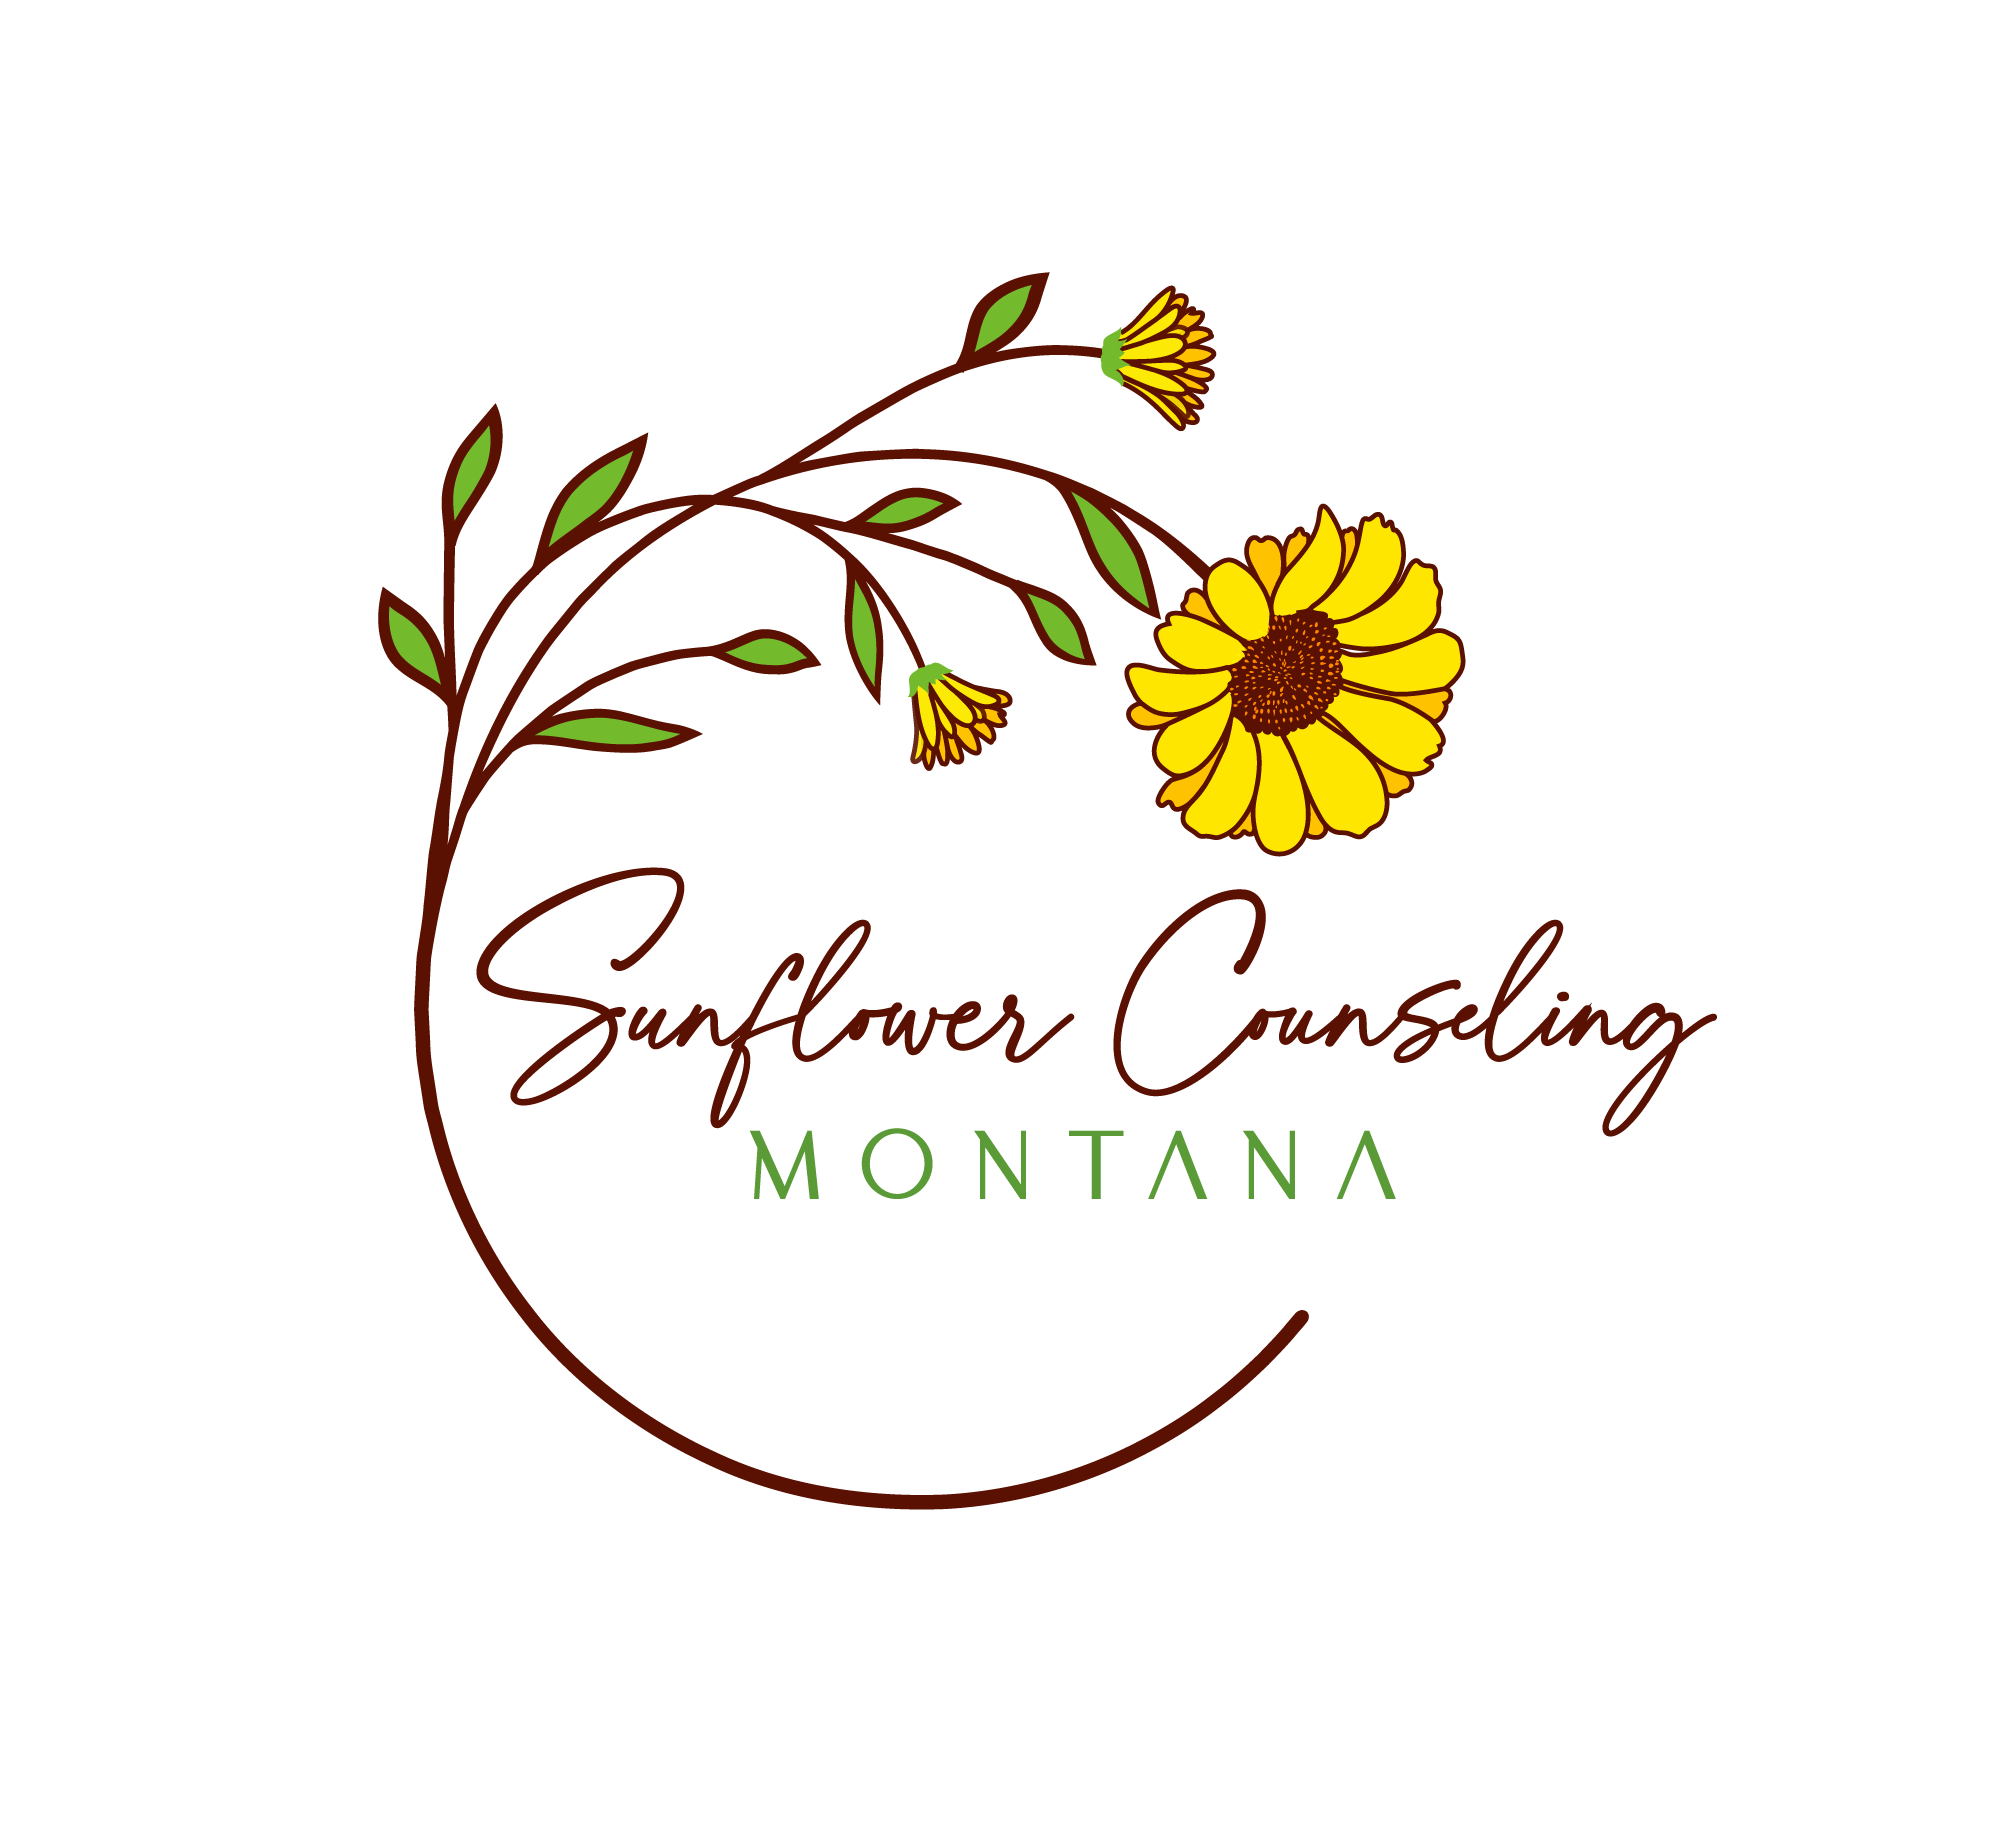 New logo needed for a counseling company which serves all ages-located in the mountains